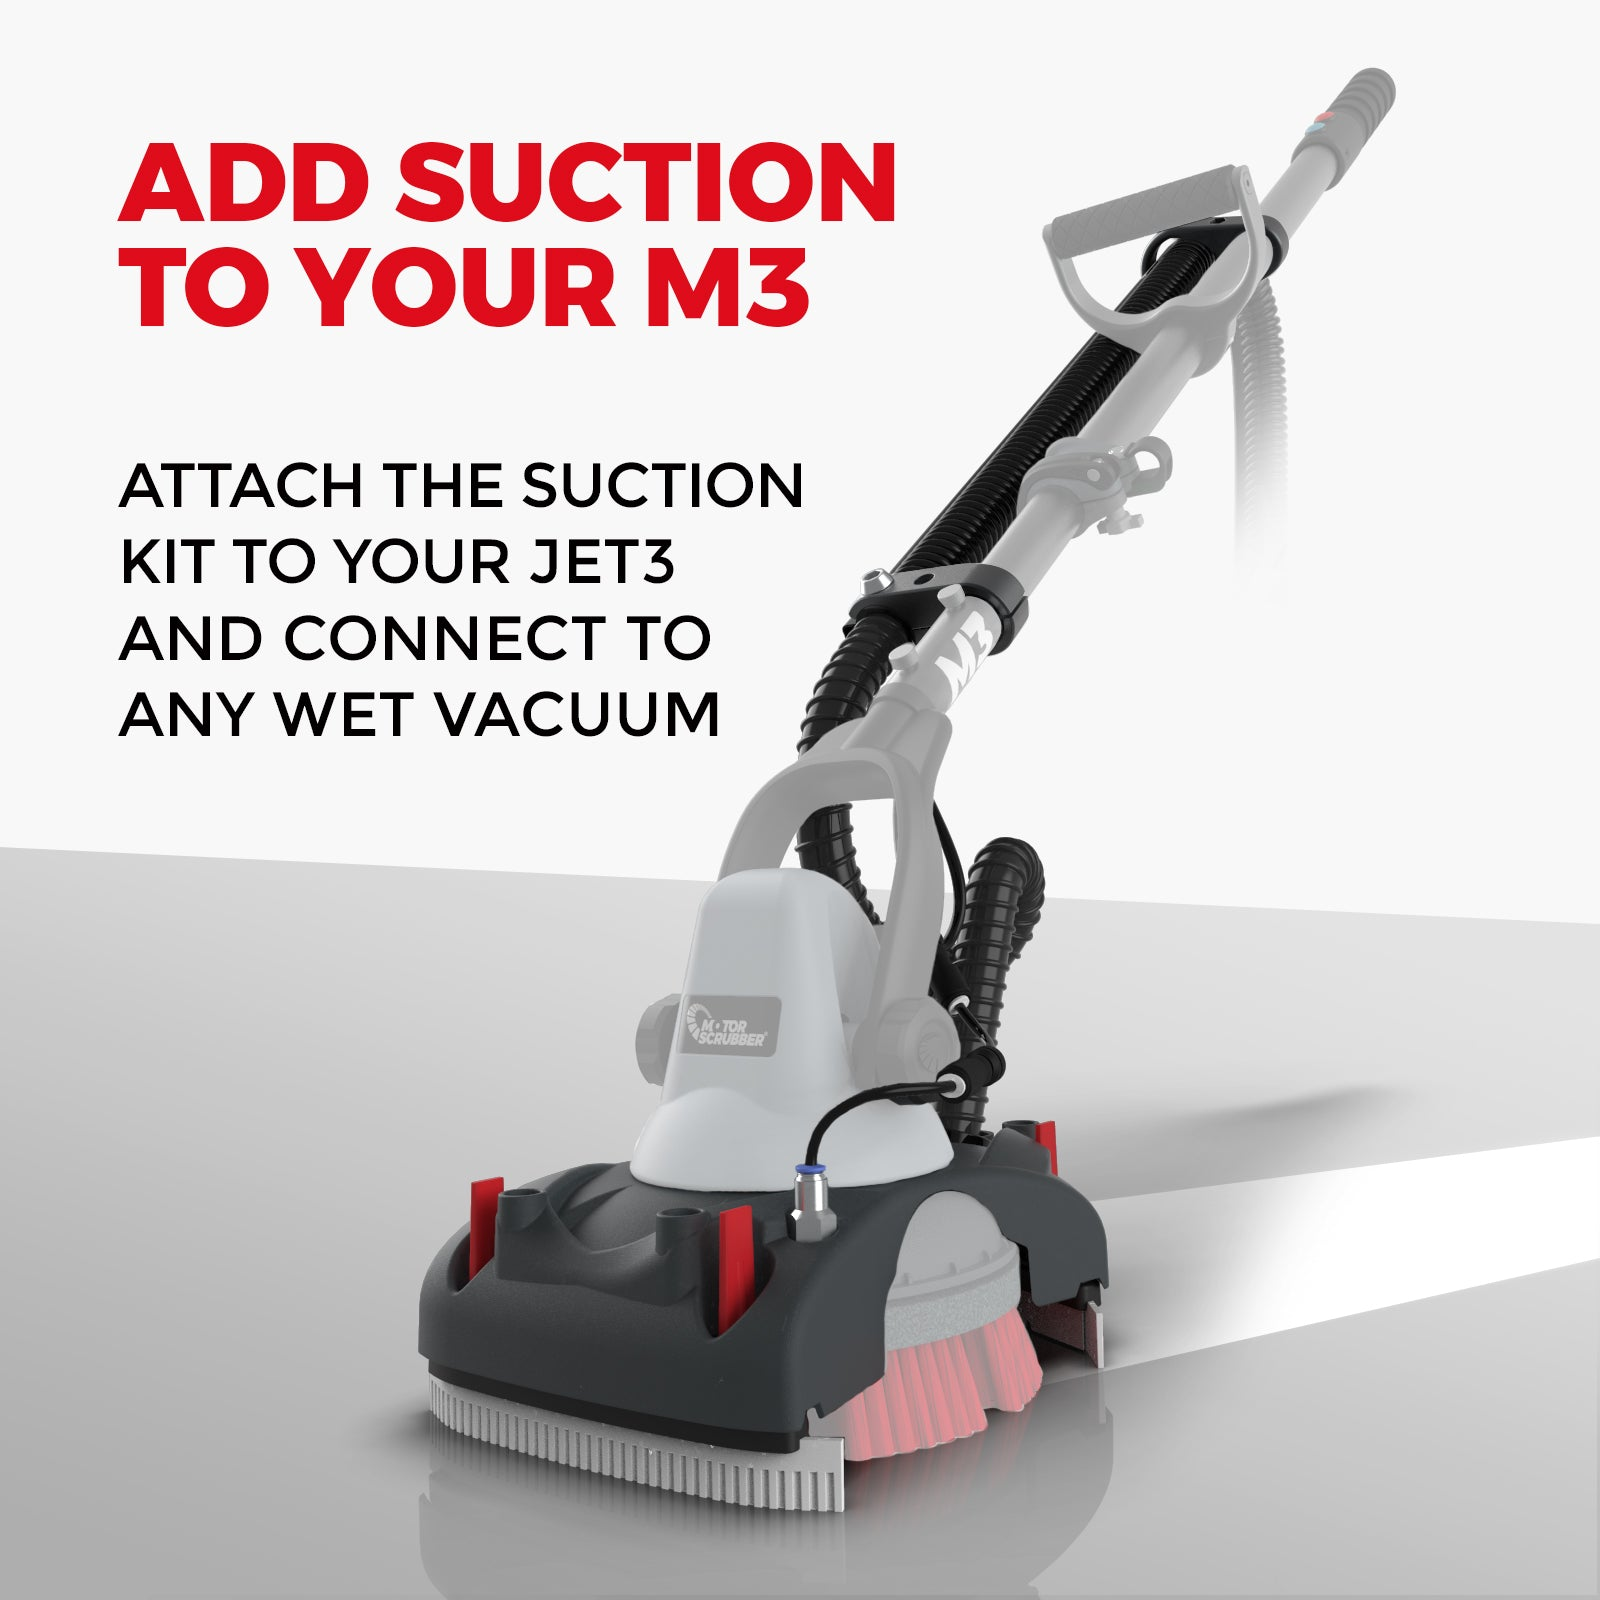 Add suction to M3